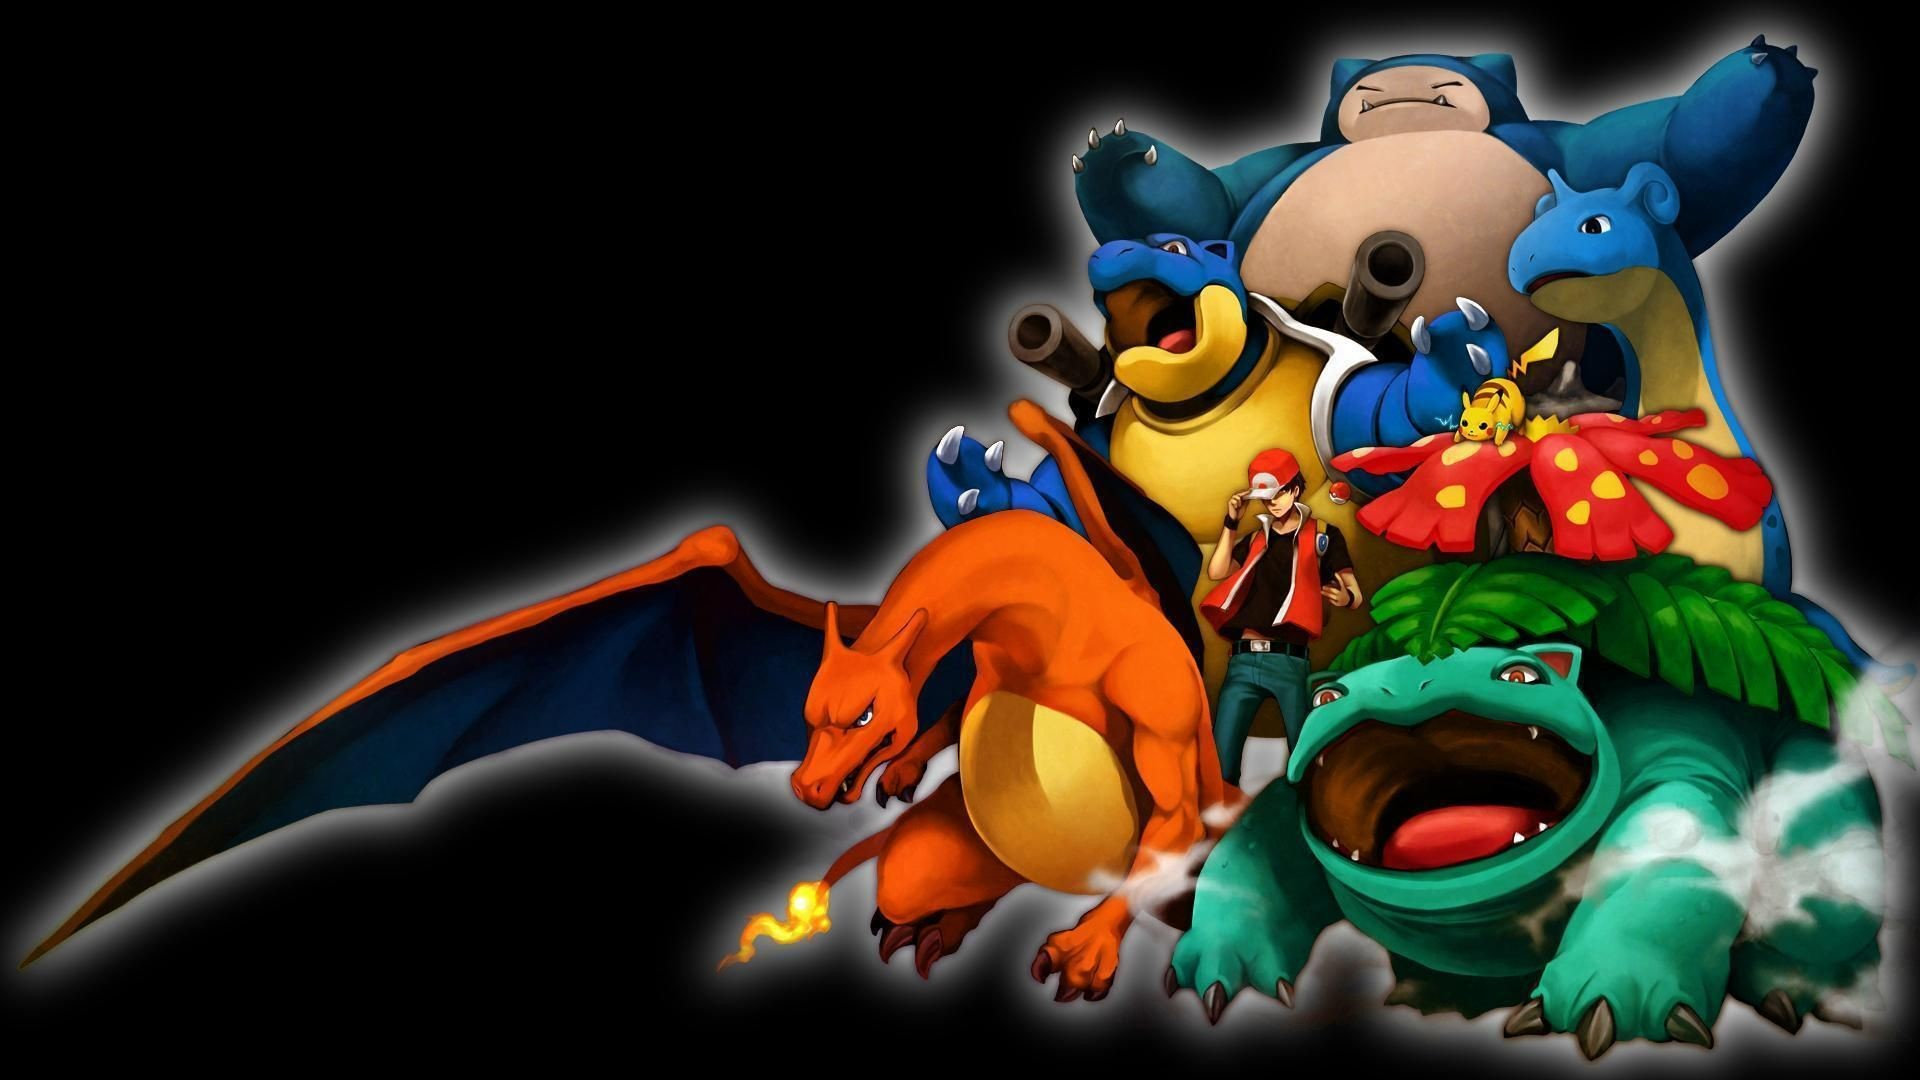 Res: 1920x1080, pokemon hd wallpapers iphone | Desktop Backgrounds for Free HD .